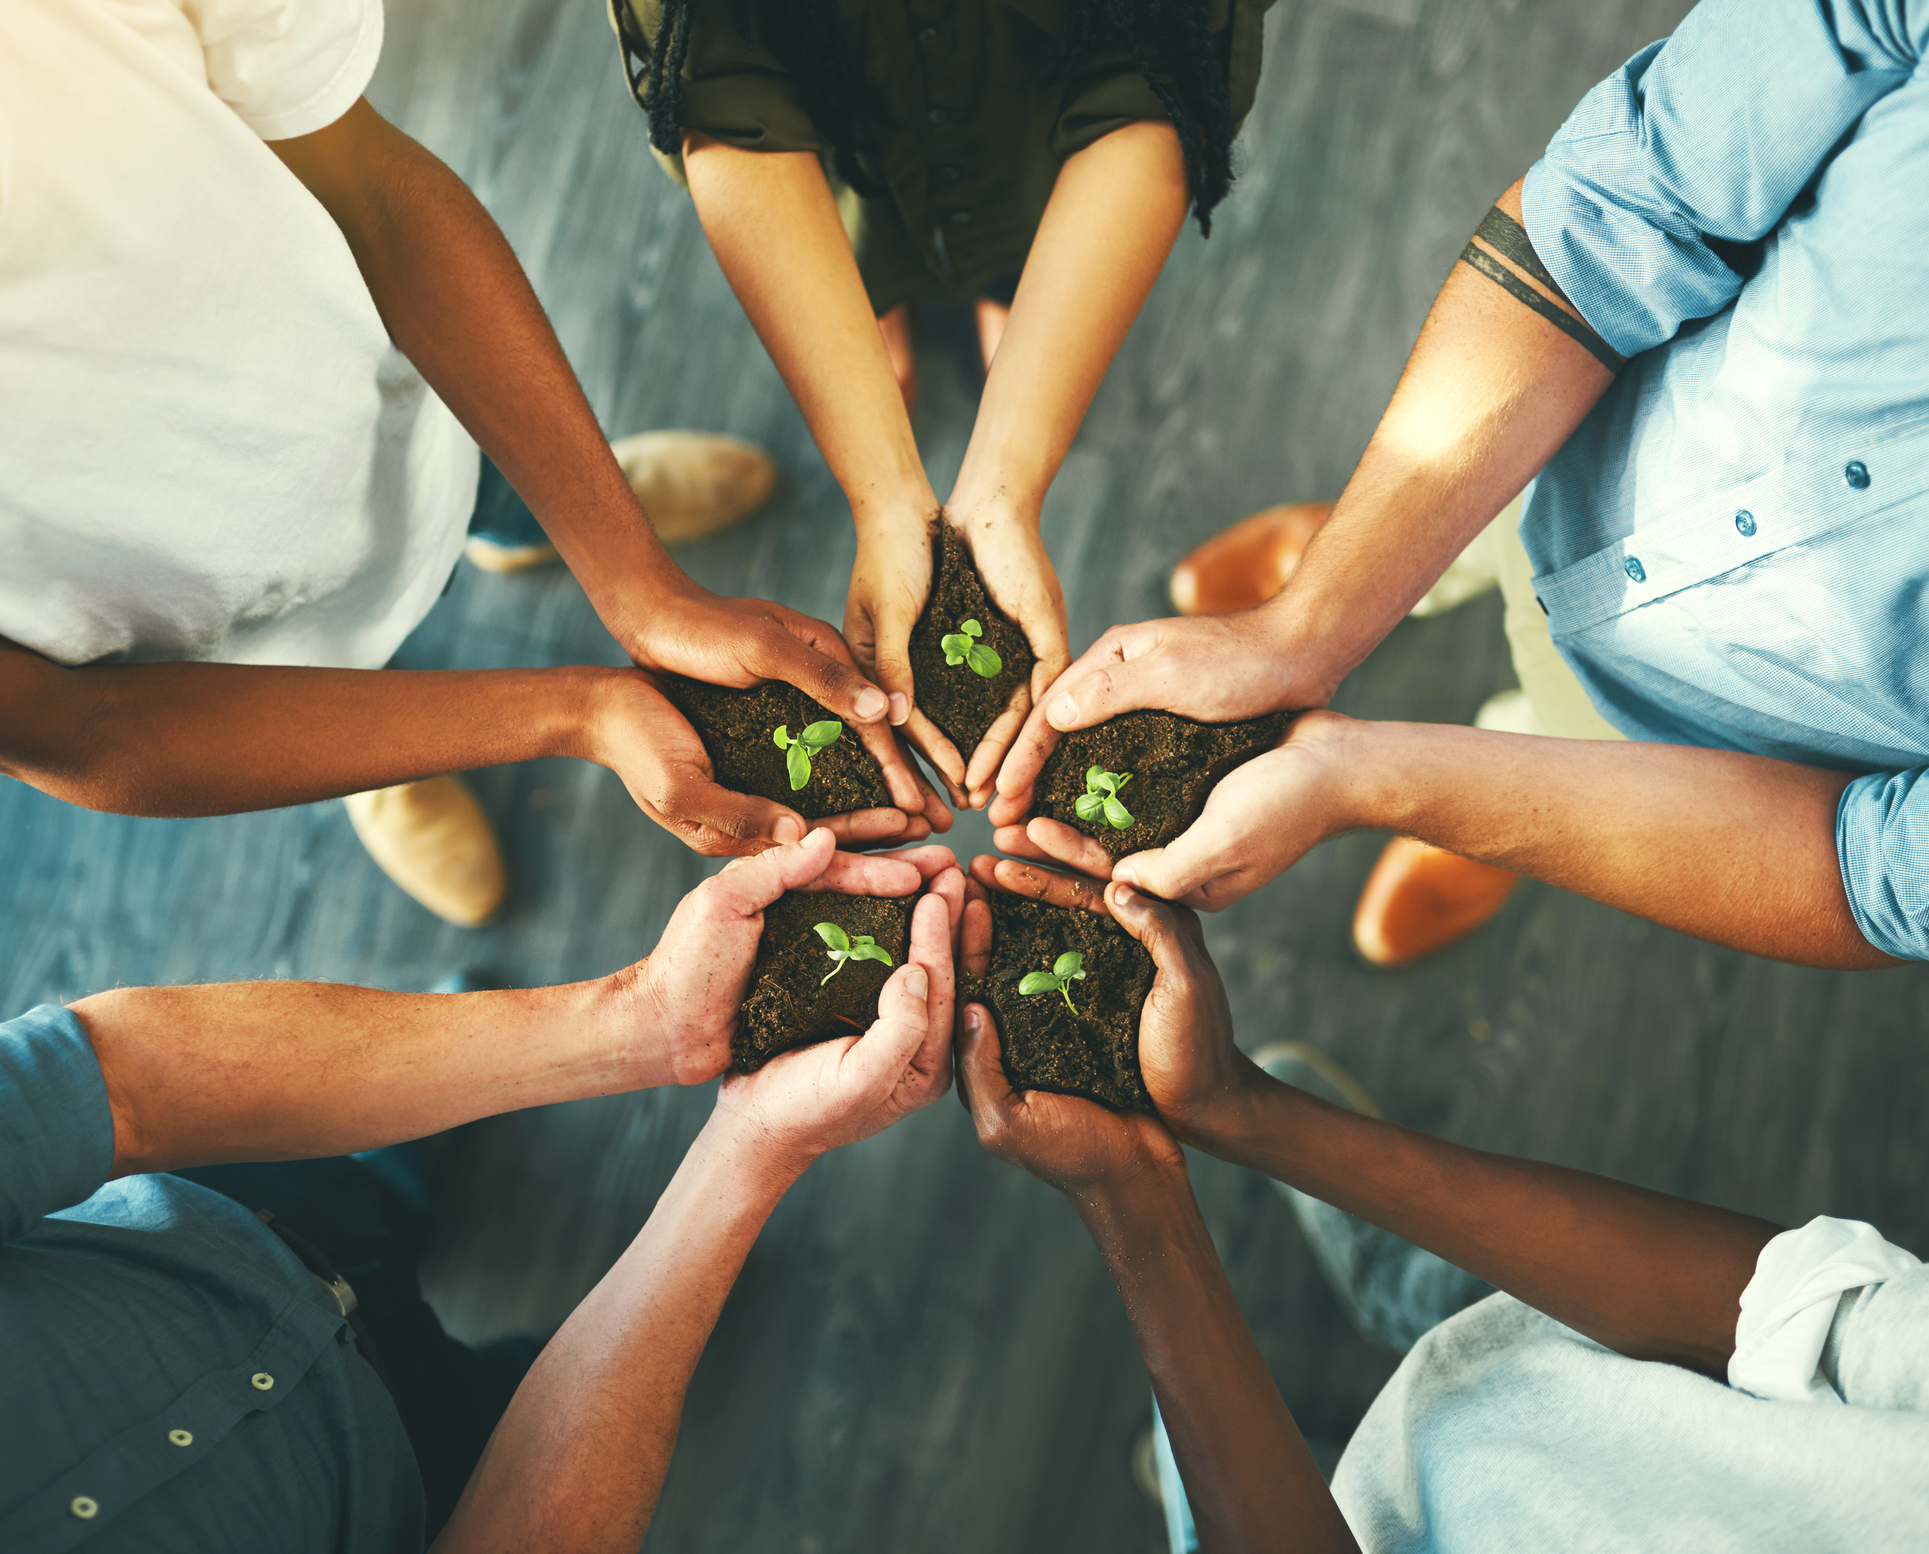 stock photo of hands in a circle holding small plant seedlings